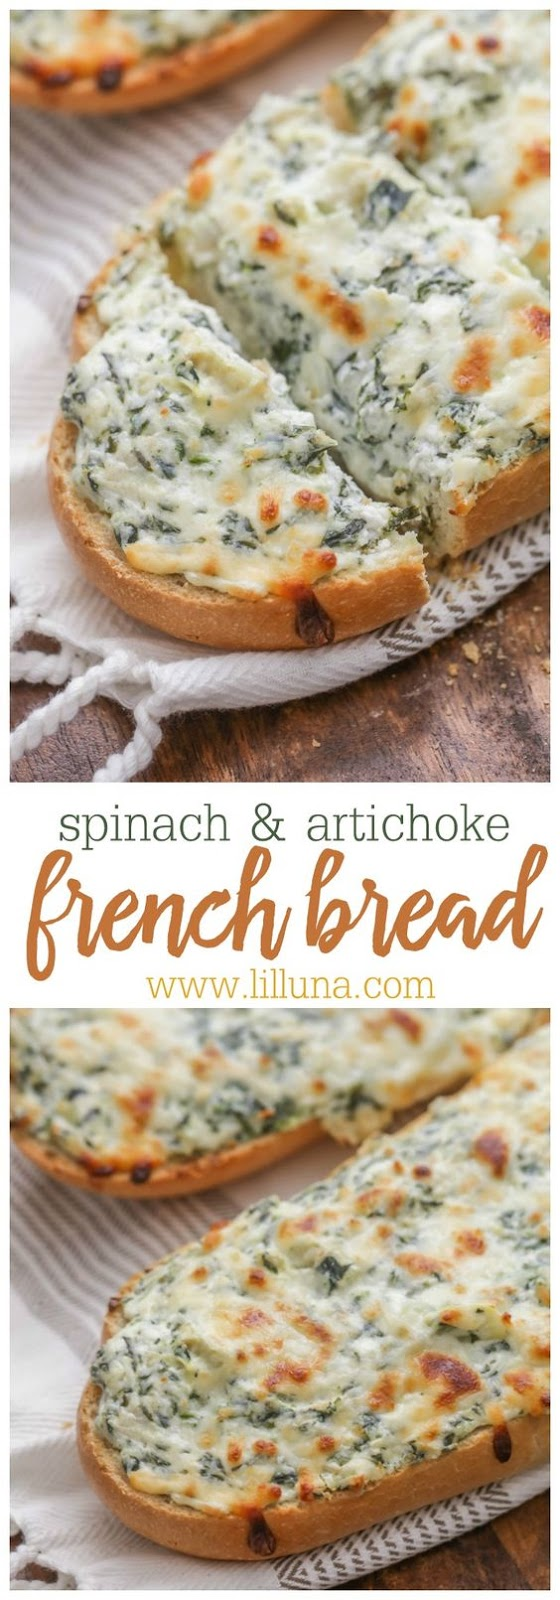 CHEESY SPINACH ARTICHOKE FRENCH BREAD #cheese #spinach #artichoke #frenchfood #bread #frenchbread #lunchideas #lunchrecipes